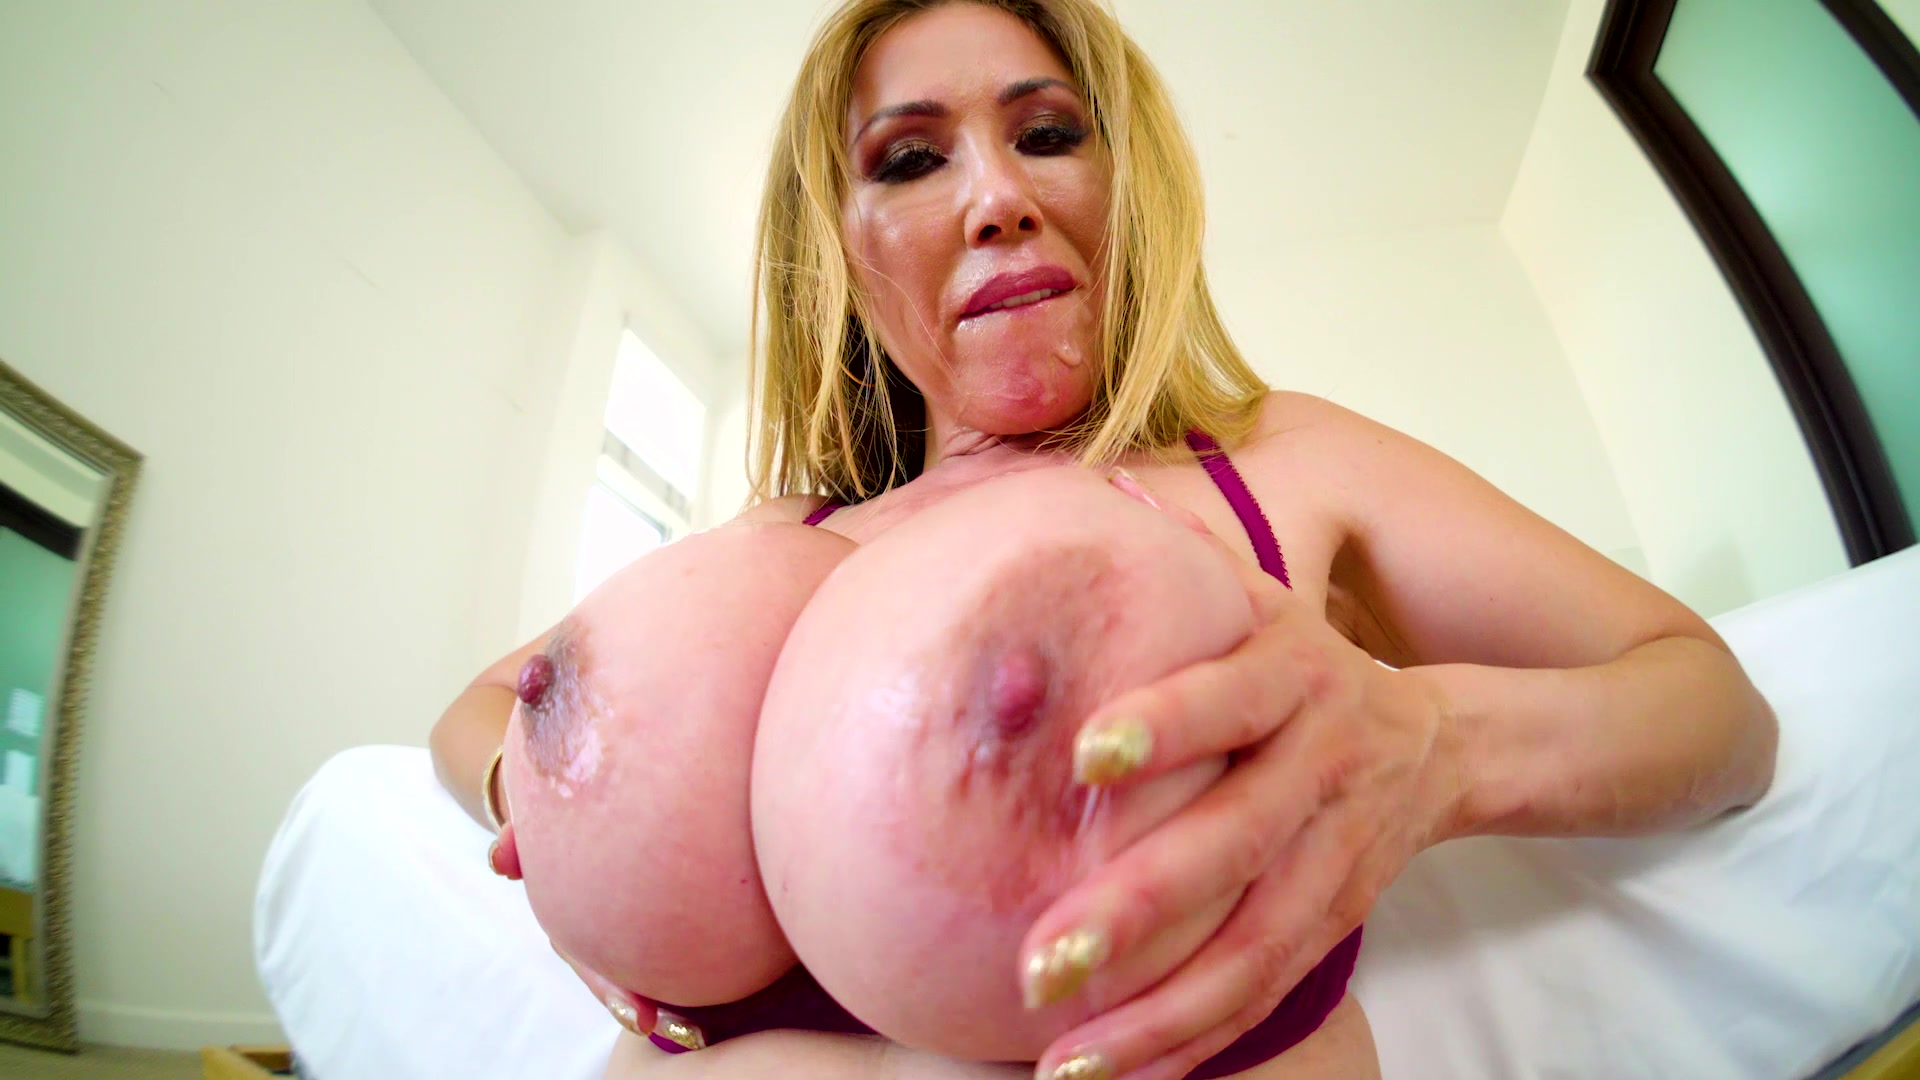 Kianna dior tit fuck something is